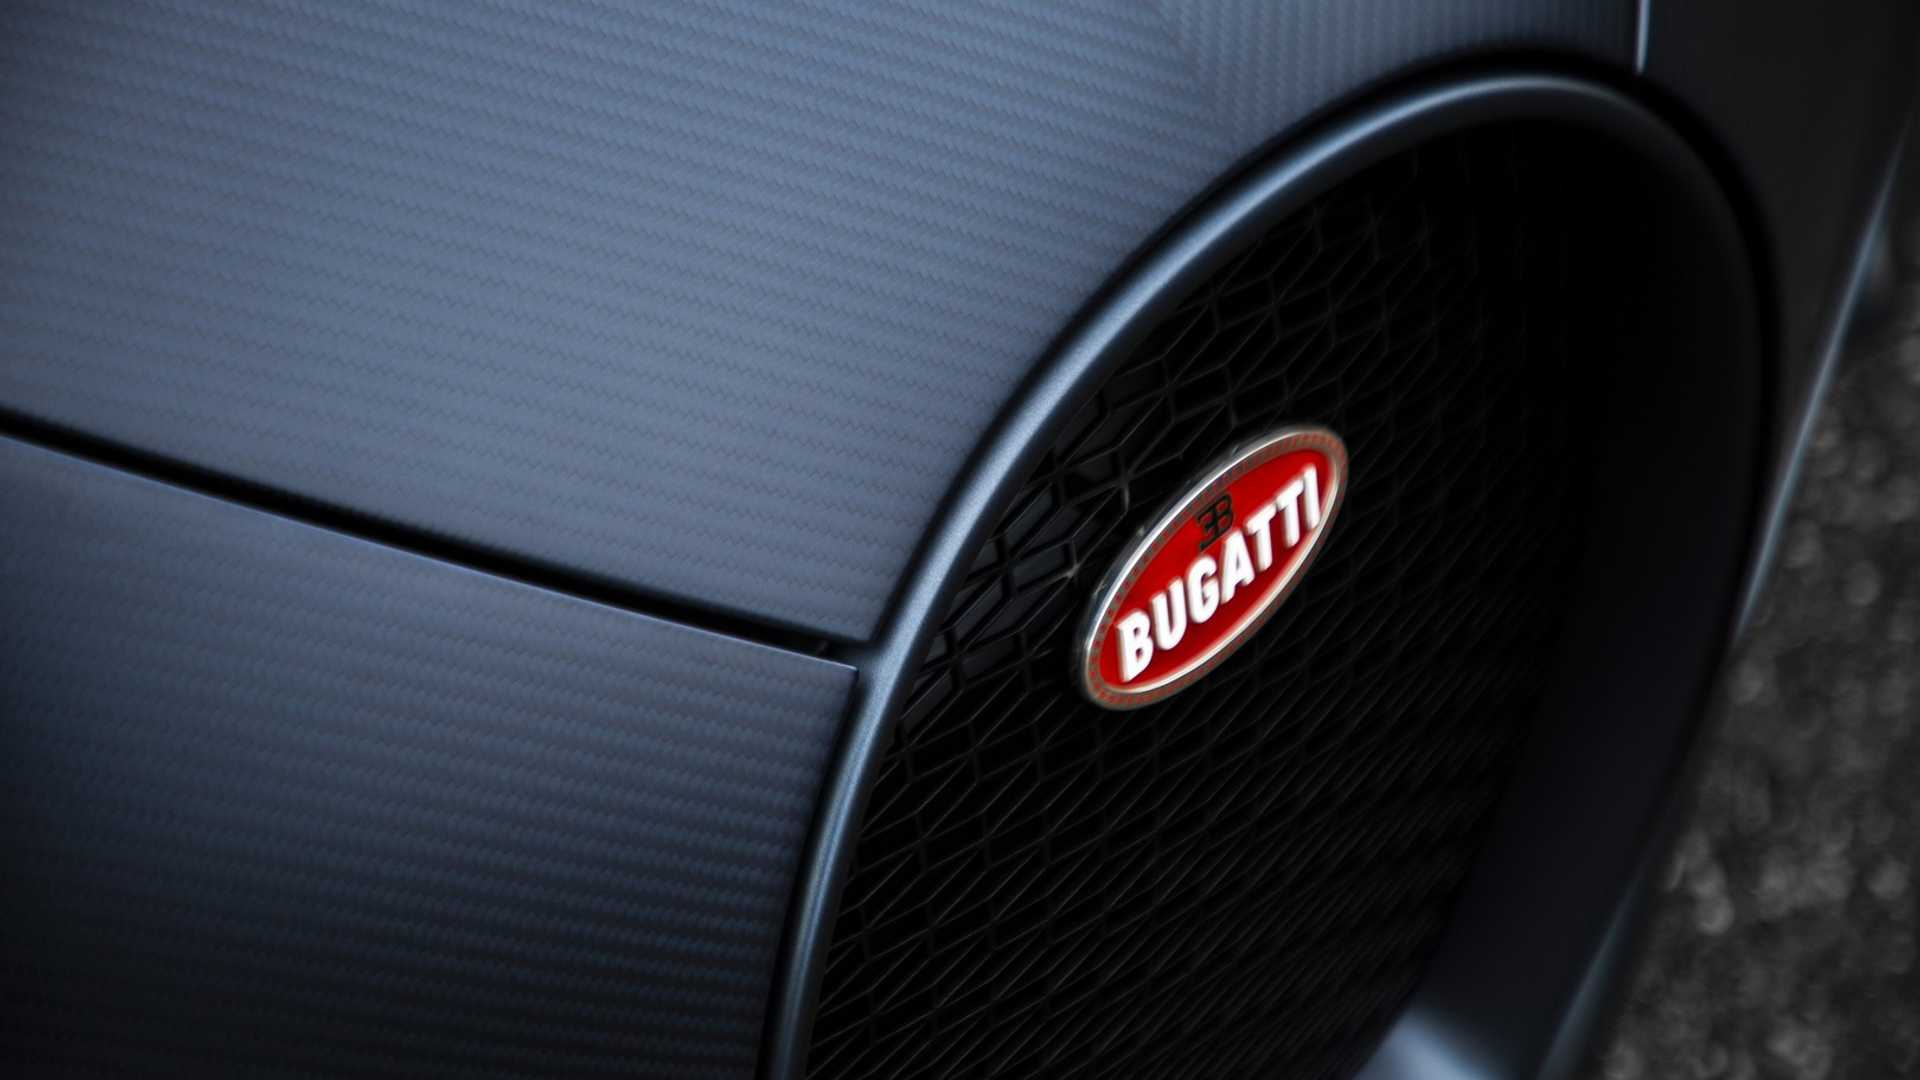 Bugatti will come to the 2019 Geneva International Motor Show in Switzerland with the world's single most expensive road-going hypercar